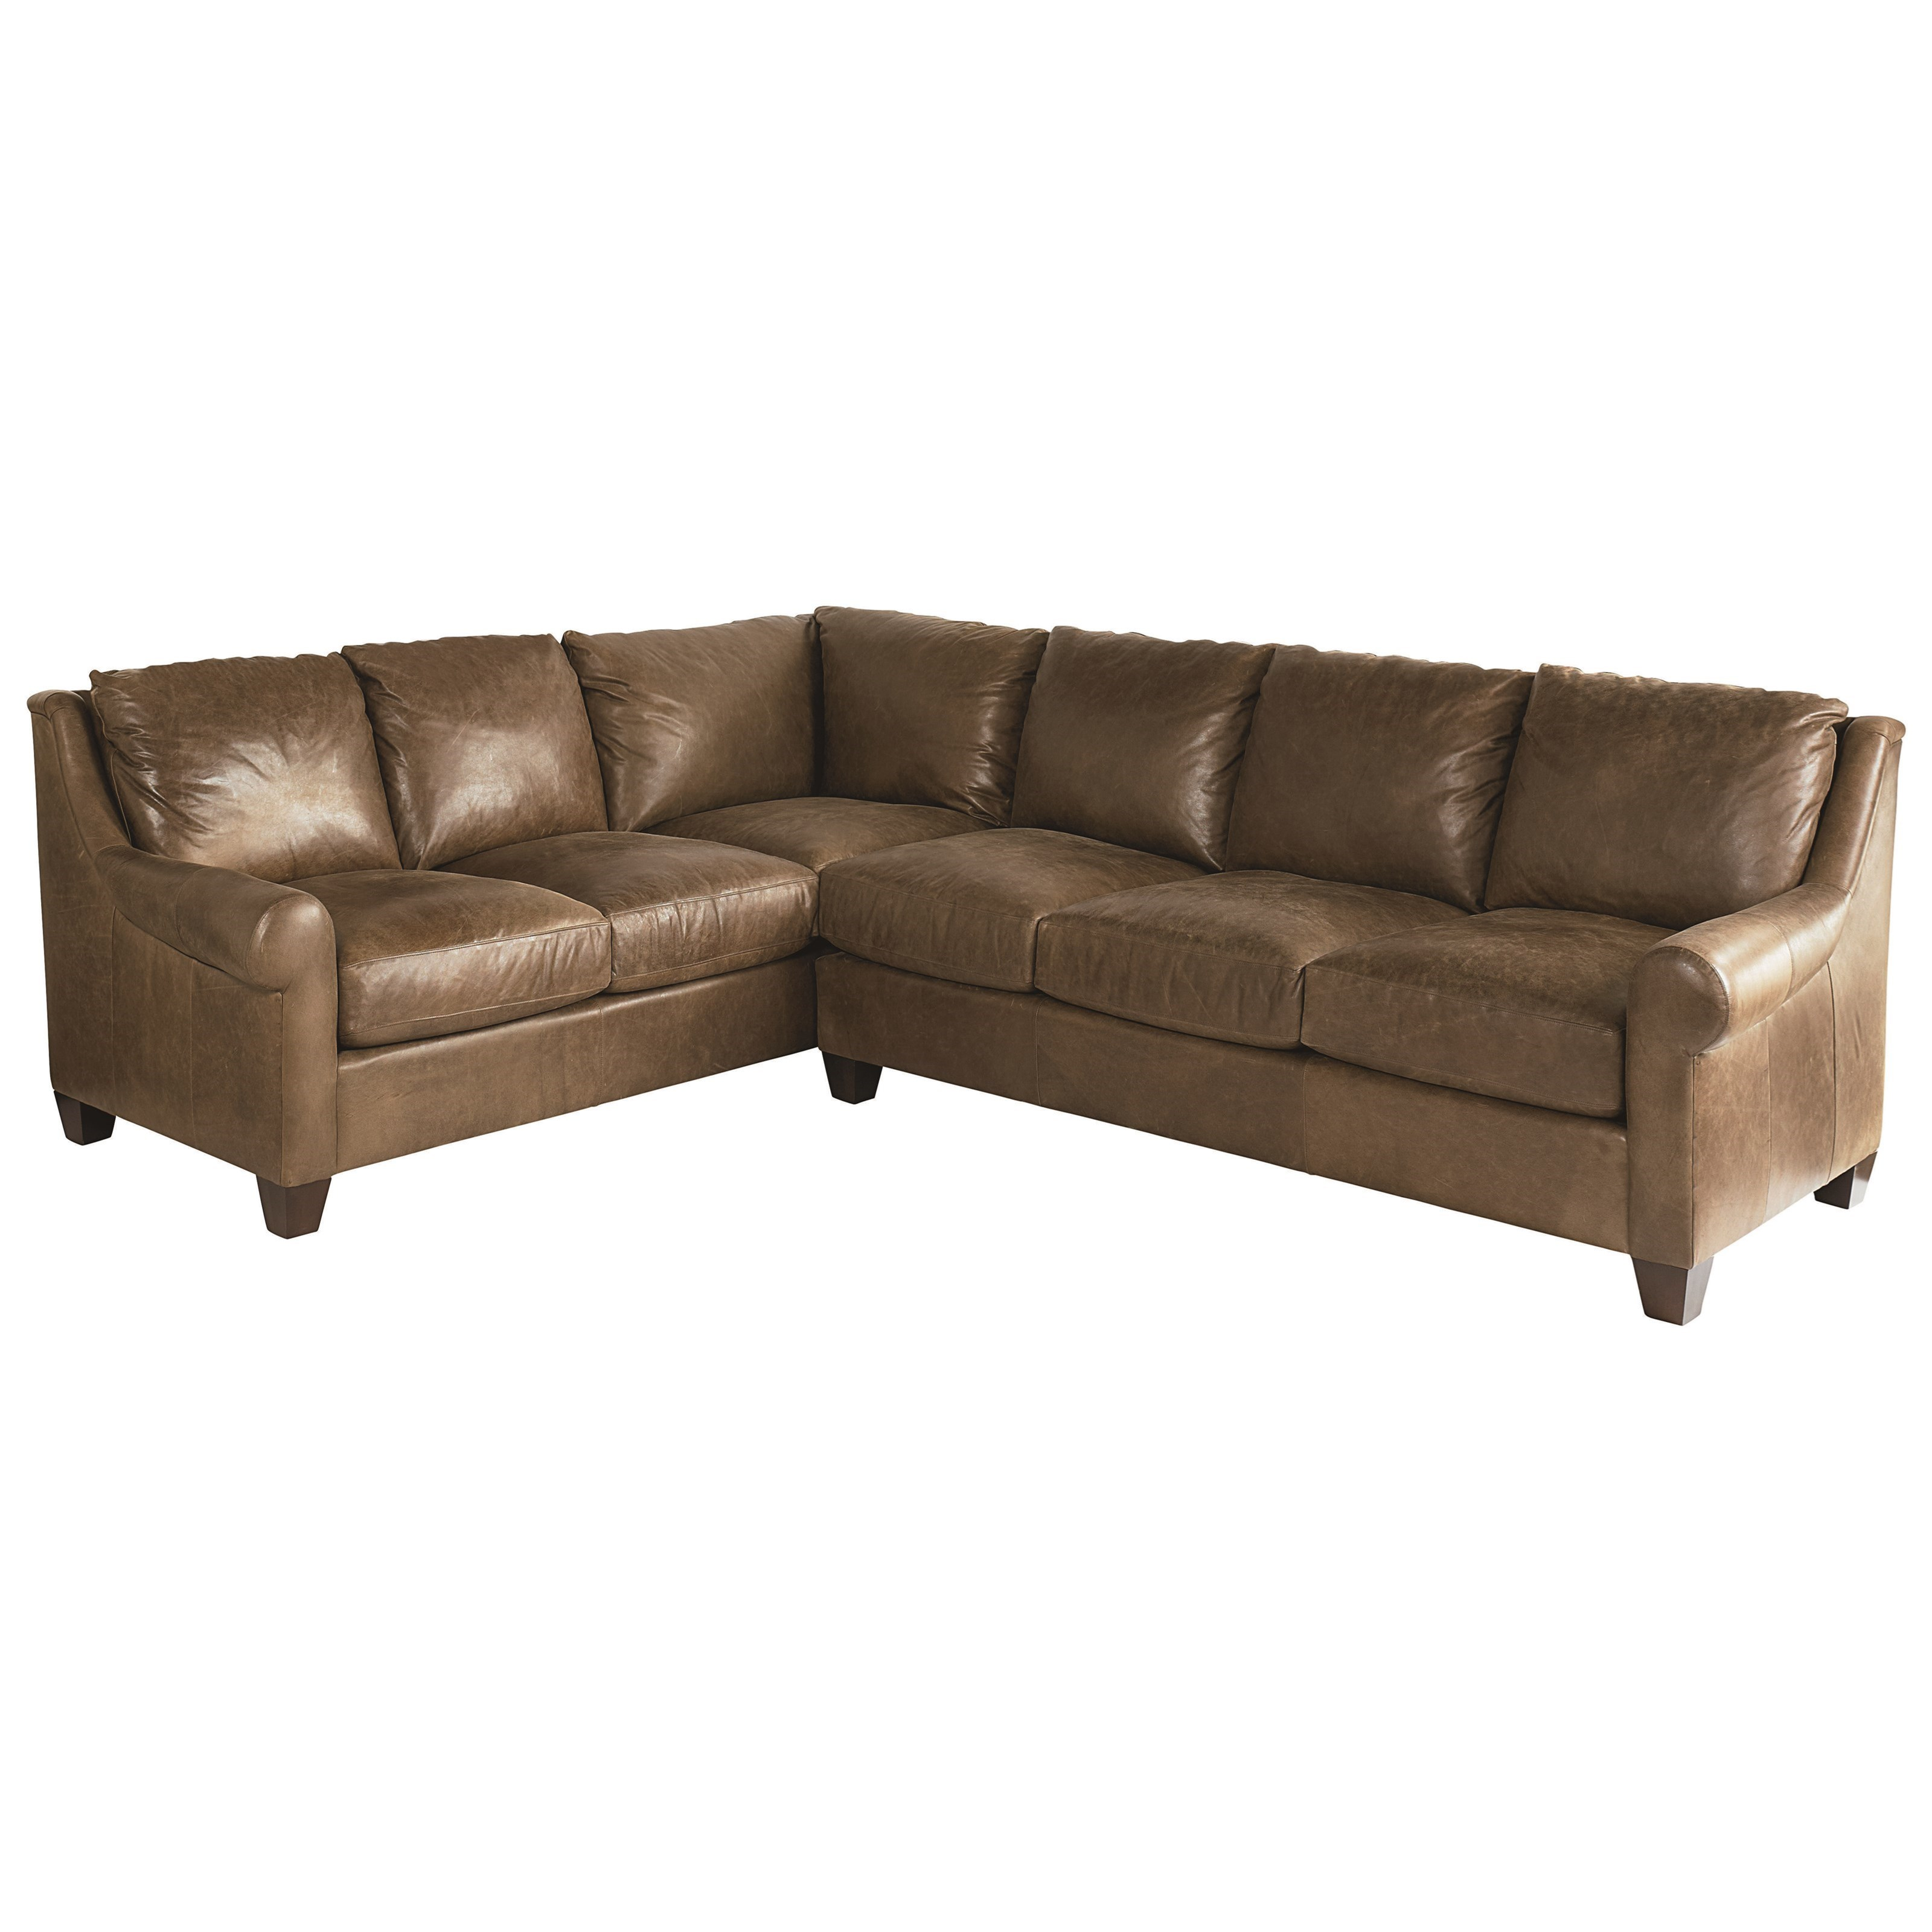 Ellery 5 Seat Sectional by Bassett at Hudson's Furniture